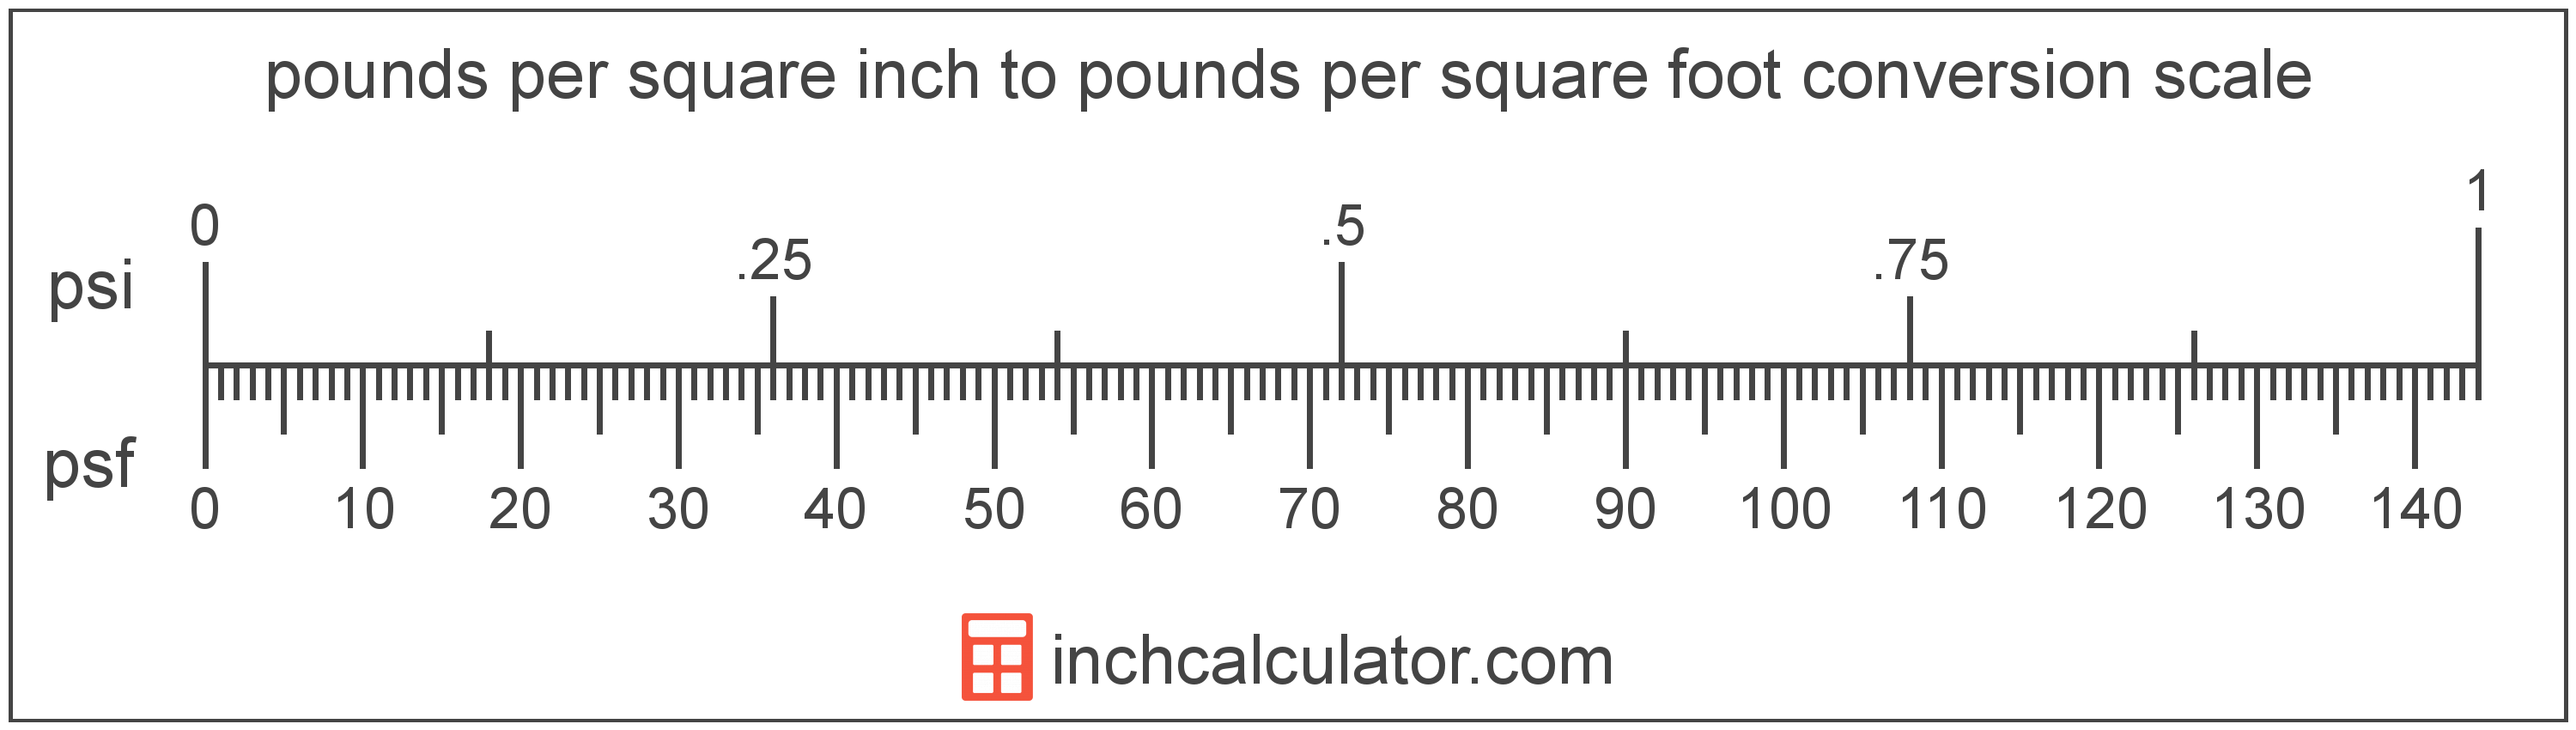 conversion scale showing pounds per square inch and equivalent pounds per square foot pressure values